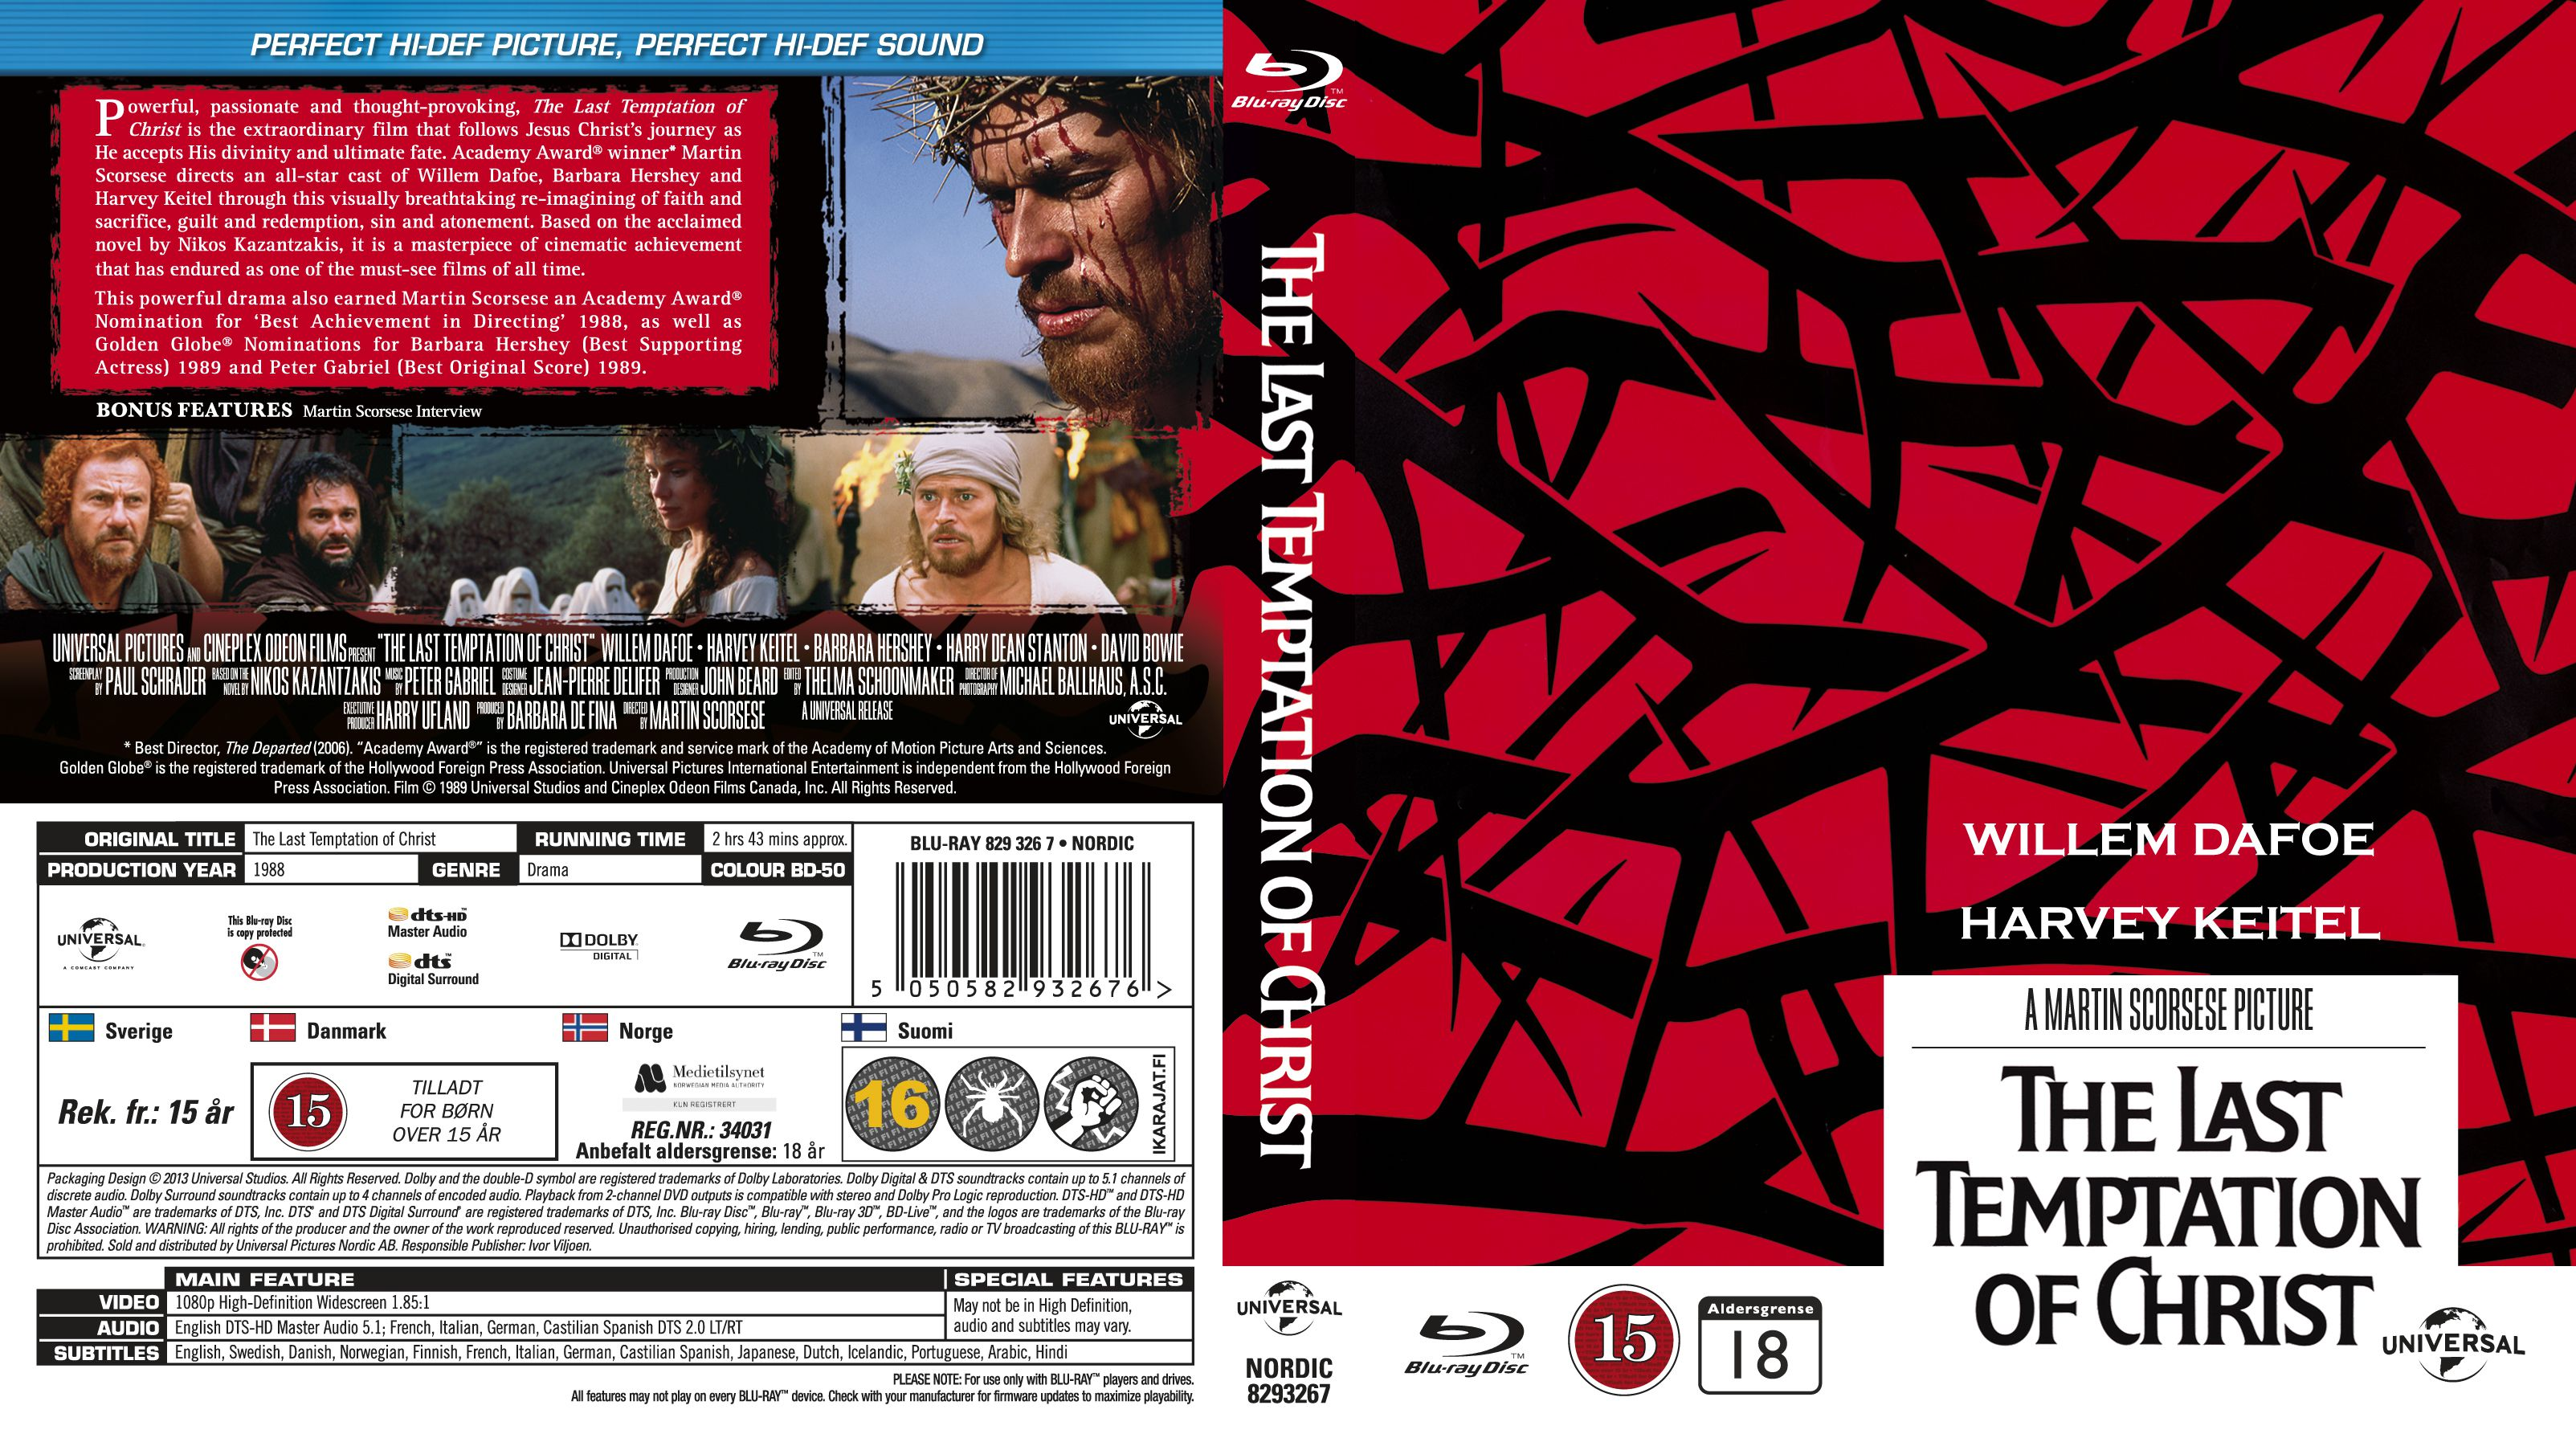 The Last Temptation of Christ – Ultima ispita a lui Iisus (1988)